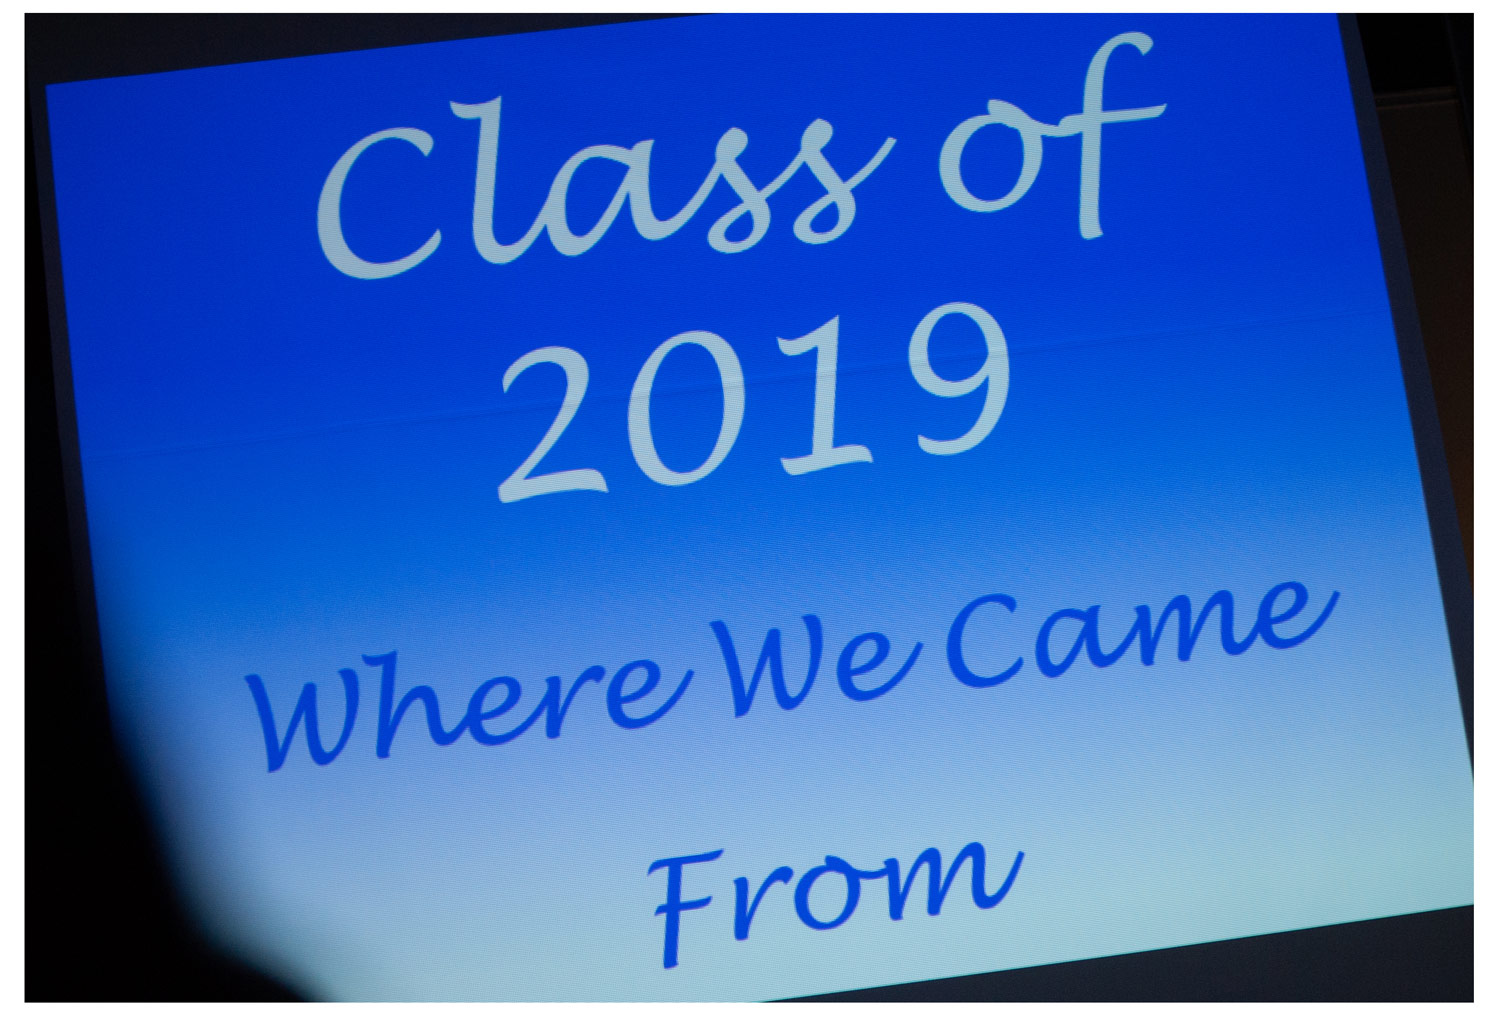 class-2019-where-we-came-from.jpg